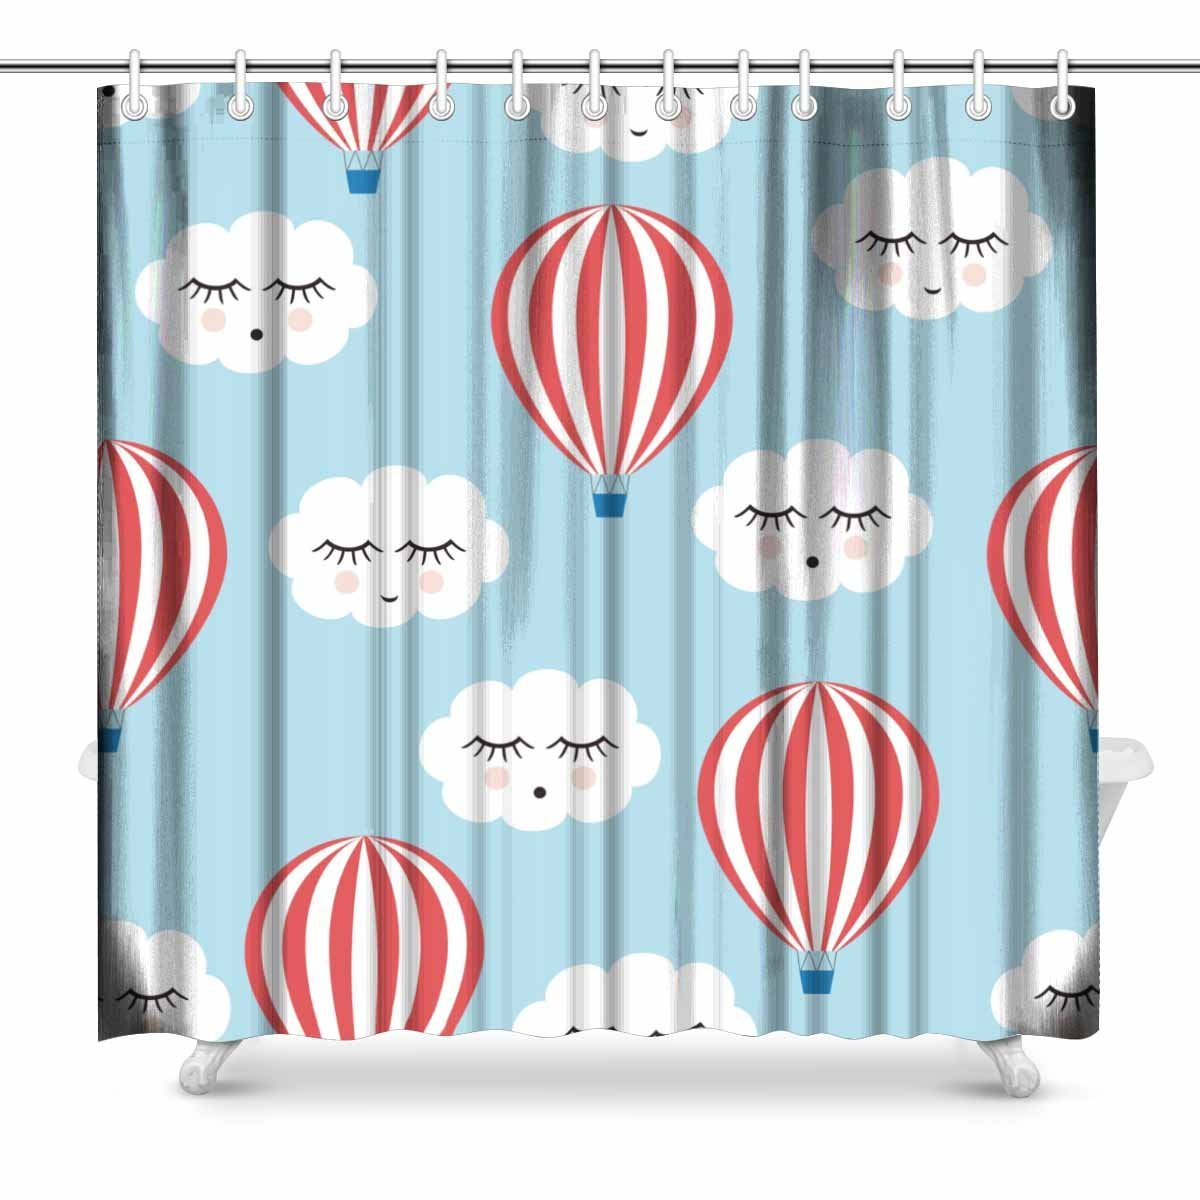 Beau Aplysia Smiling Sleeping Clouds And Hot Air Balloons Country House Image  Polyester Fabric Bathroom Shower Curtain Set 72 Inches In Shower Curtains  From Home ...